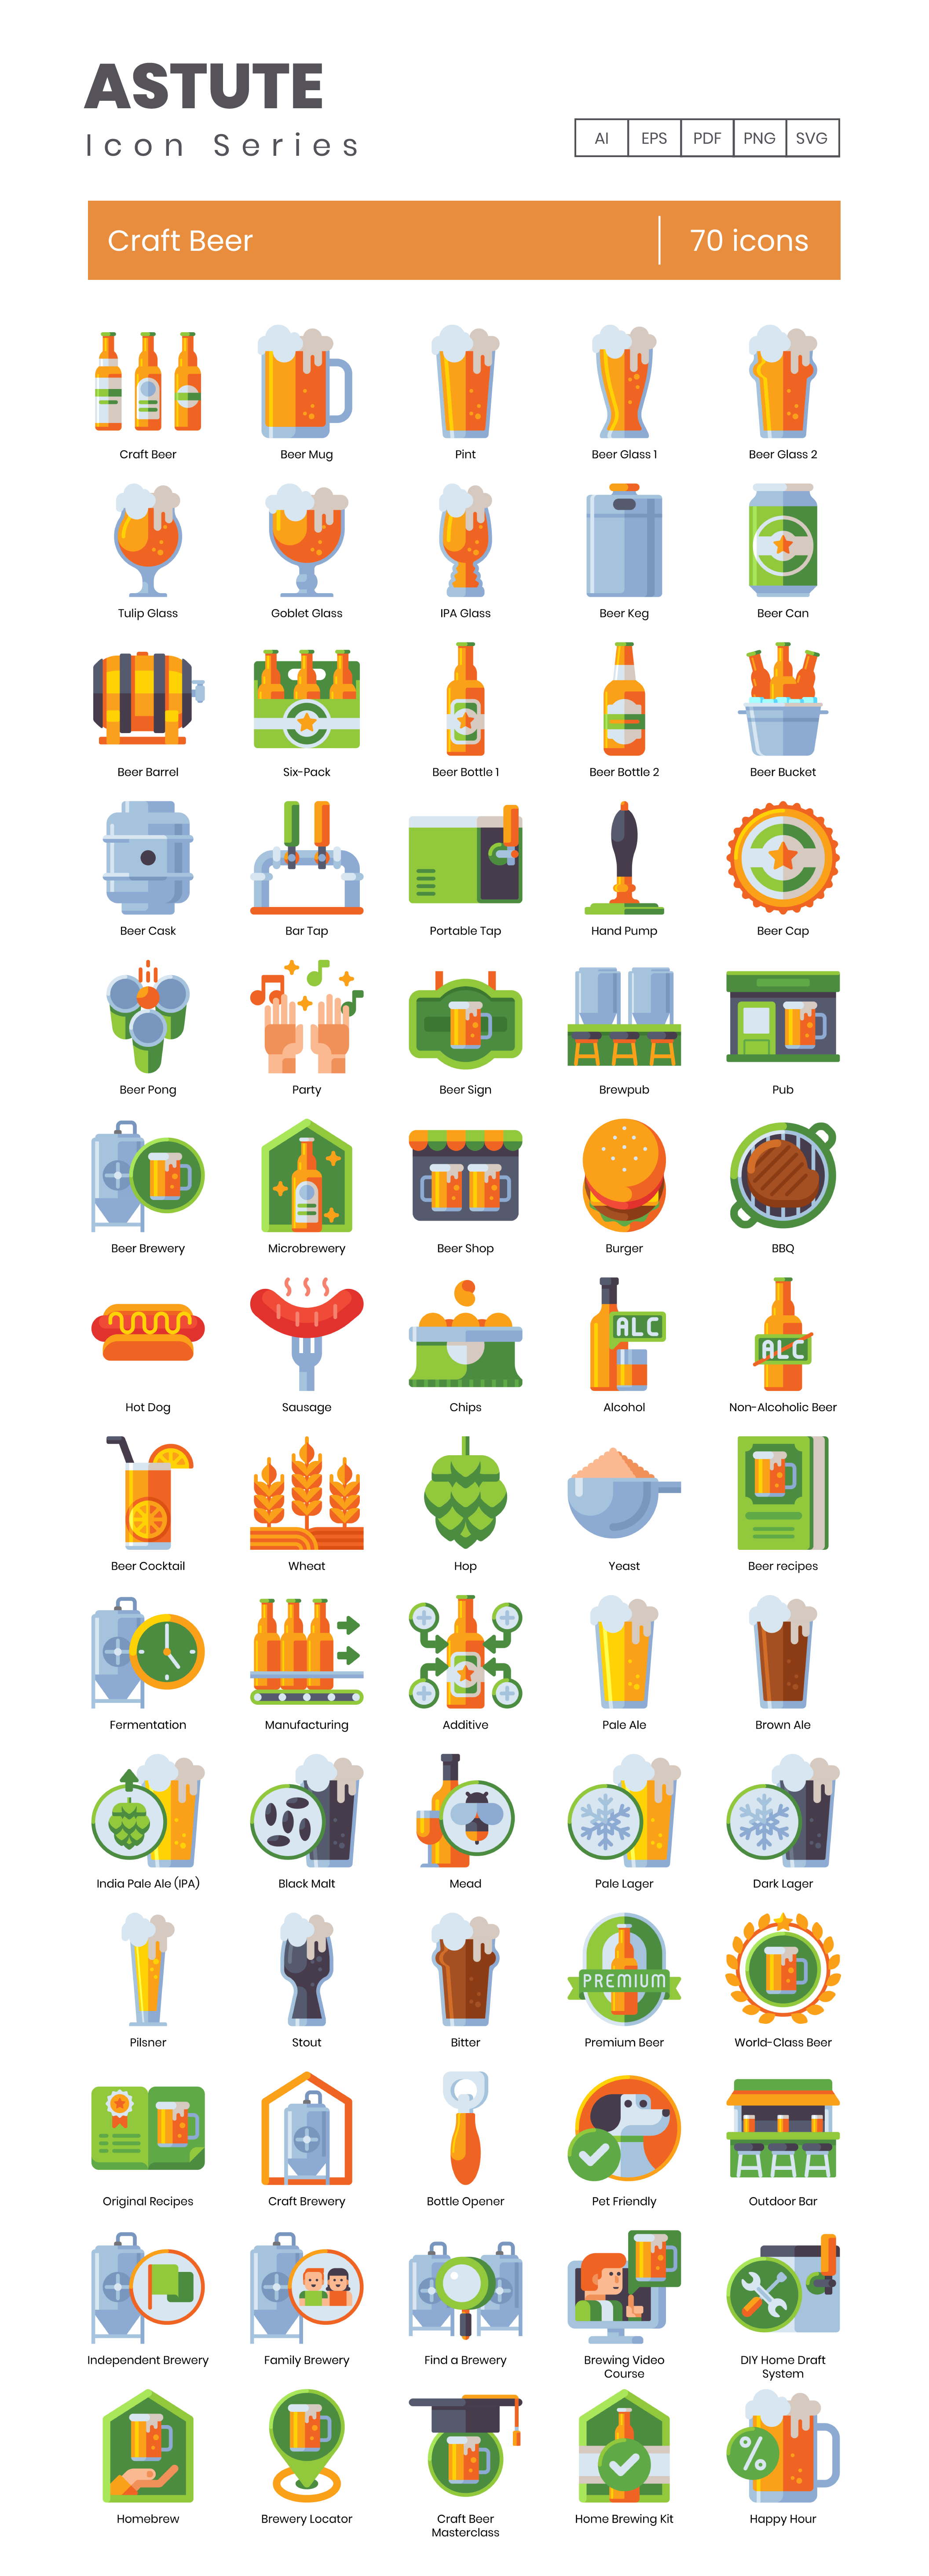 Craft Beer Vector Icons Preview Image